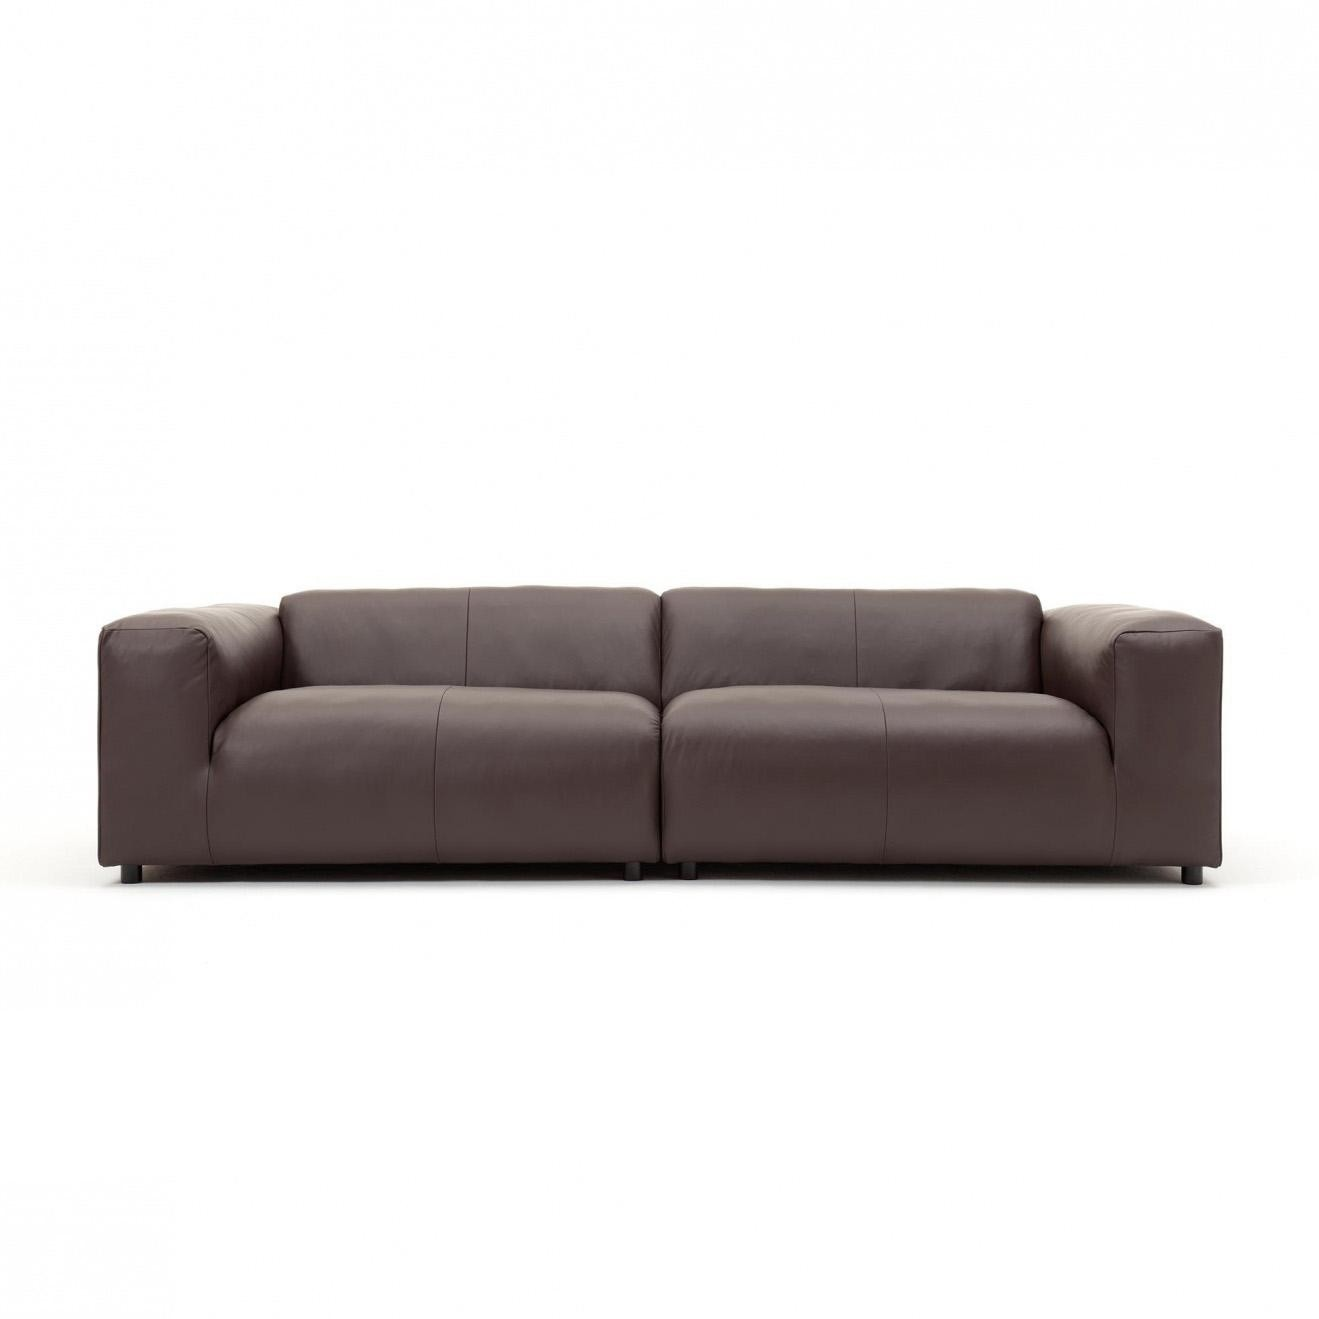 Freistil Rolf Benz 187 3 Seater Leather Sofa 300x67x110cm